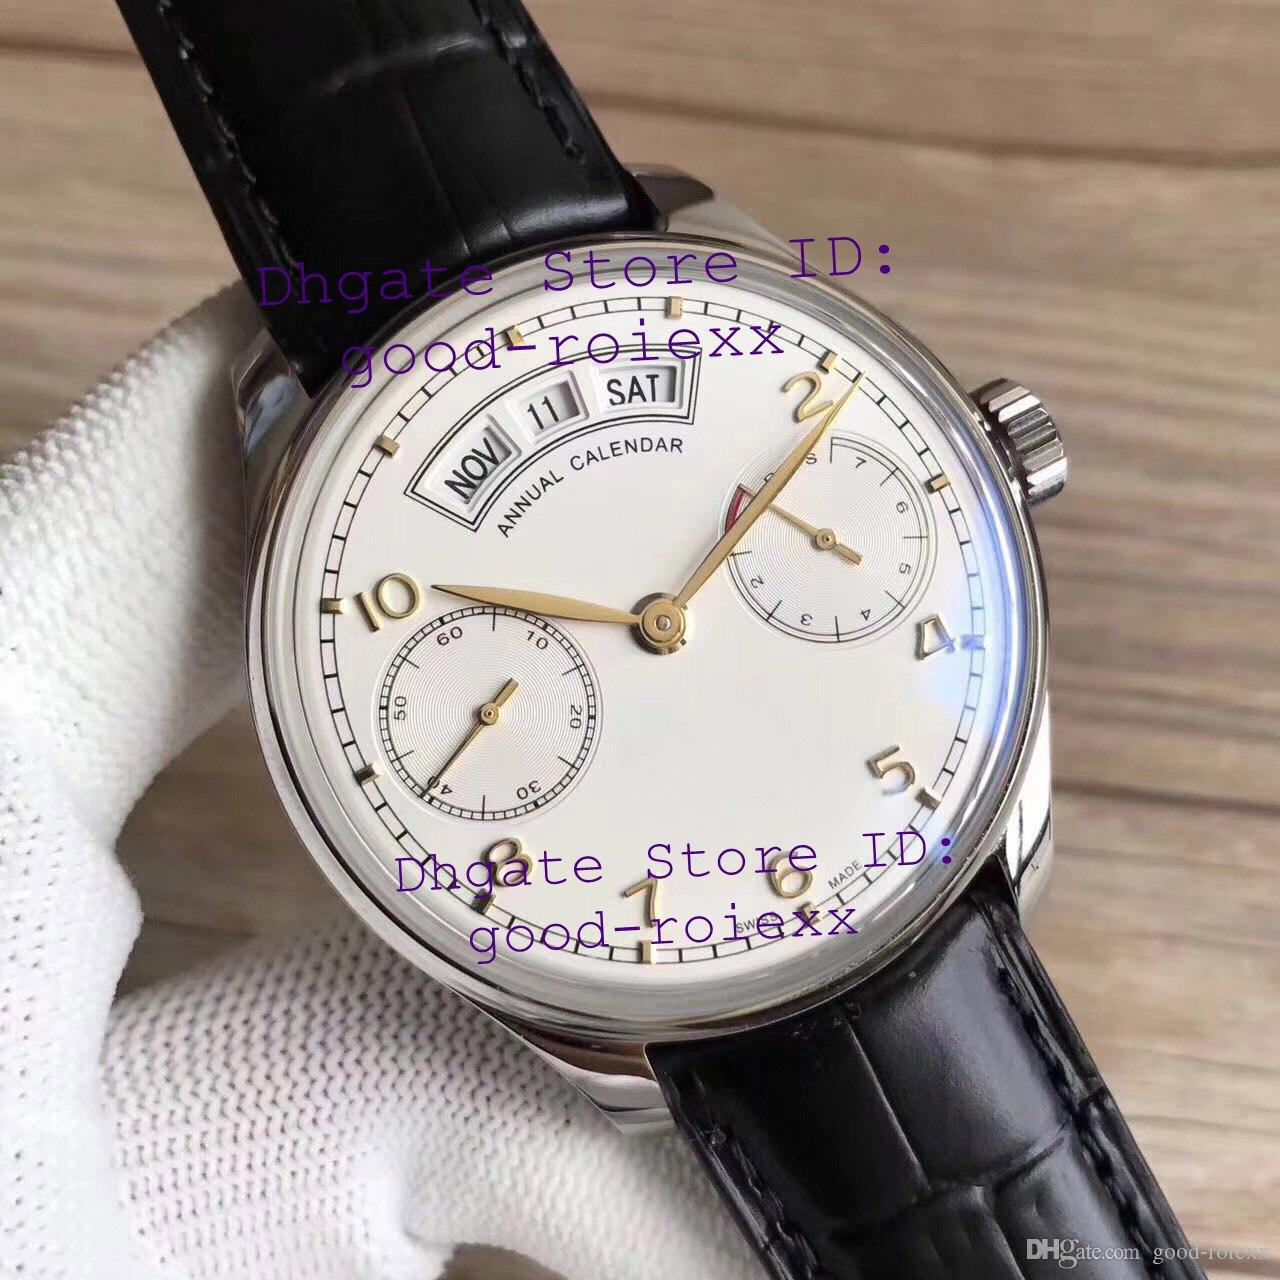 Dress Mens Automatic Cal 52850 Watch Men White Annual Calendar Day Time Power Reserve Sapphire Leather Watches Golden Hour Hand Wristwatches